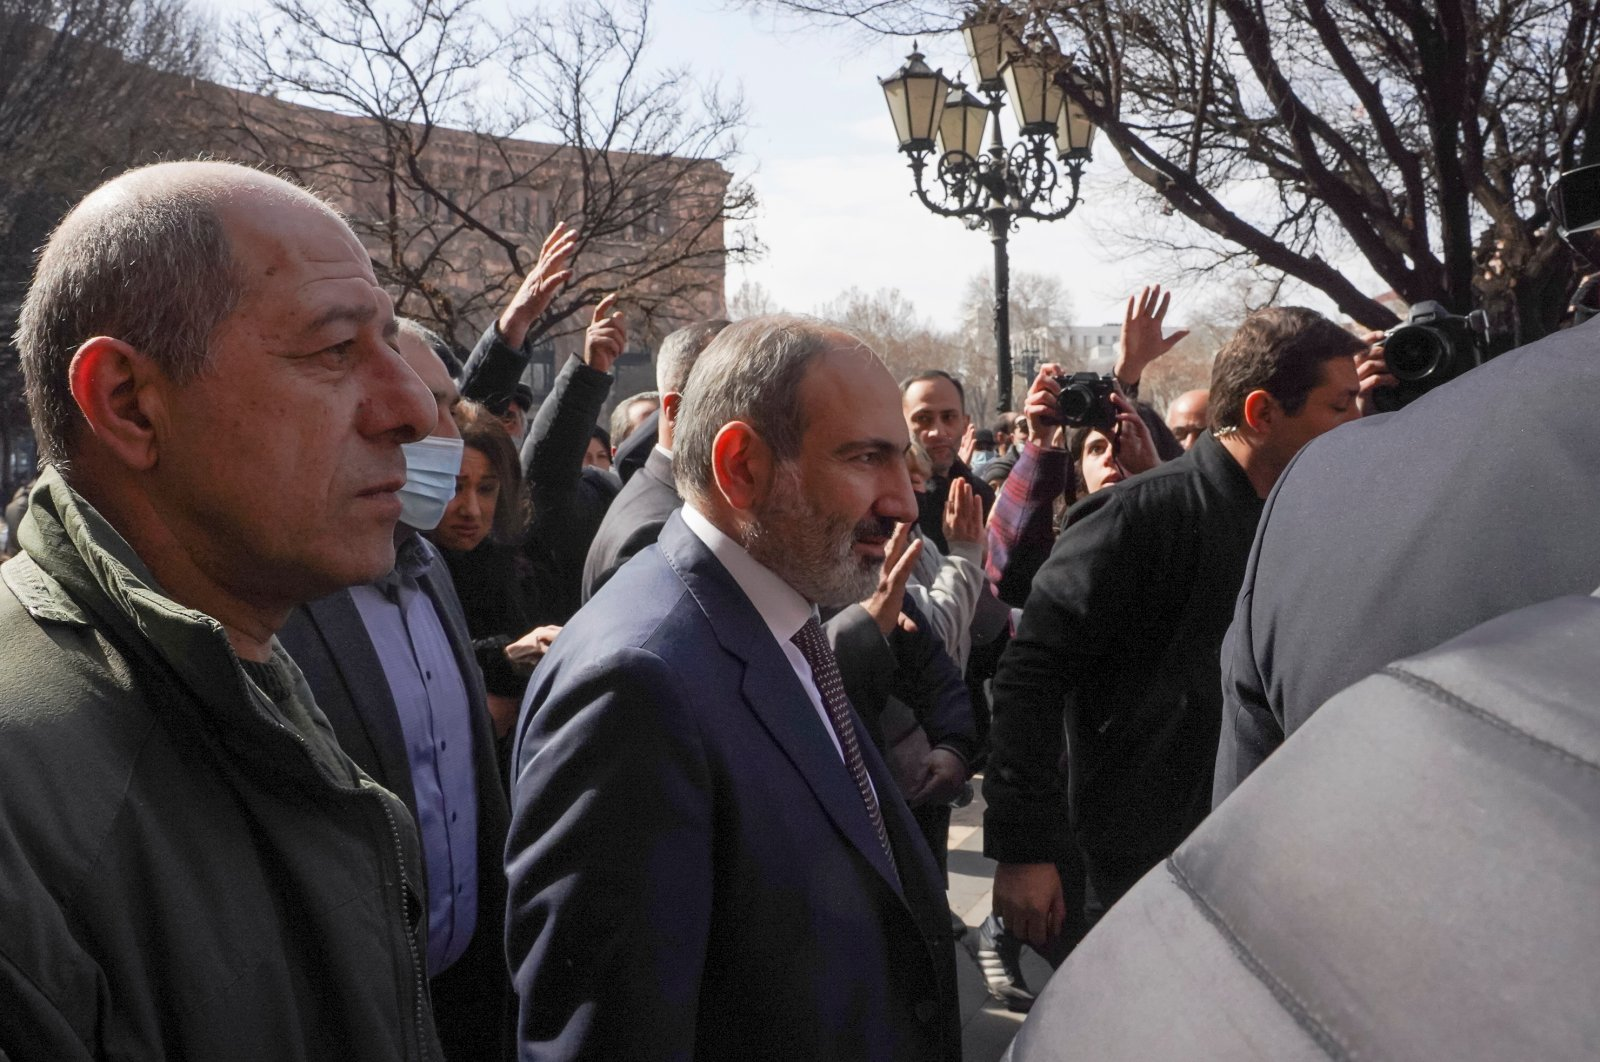 Armenian Prime Minister Nikol Pashinian meets with participants of a gathering after he called on followers to rally in the centre of Yerevan, Armenia, Feb. 25, 2021. (Reuters Photo)